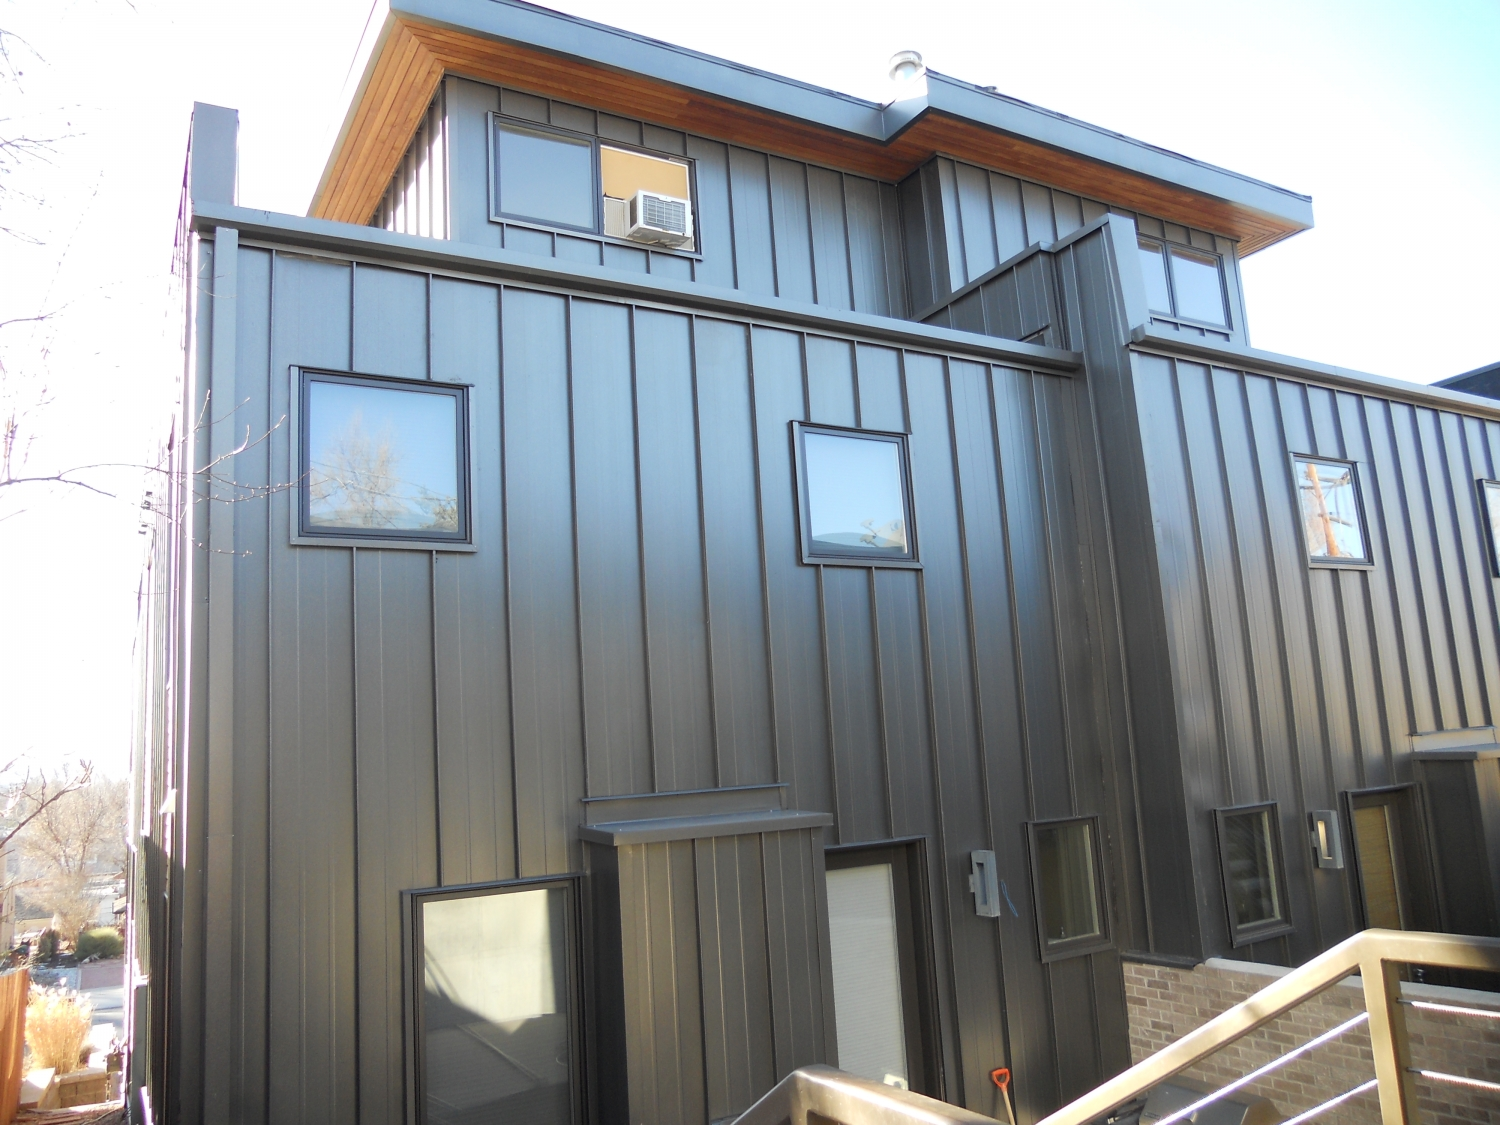 Vertical metal siding